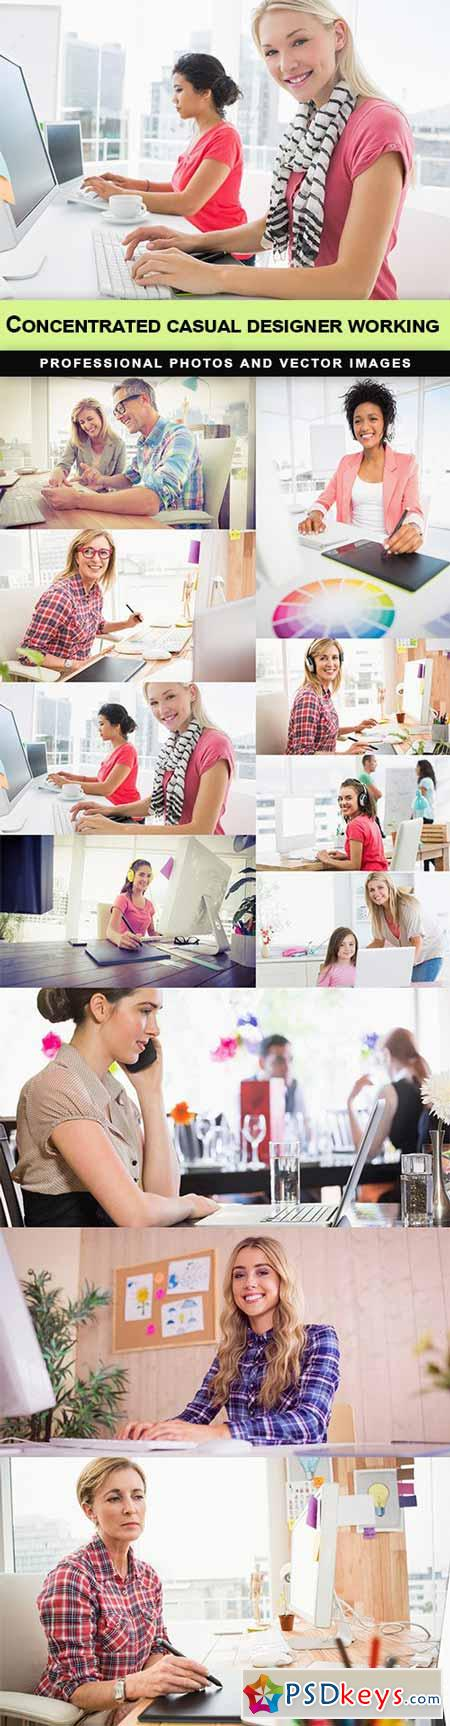 Concentrated casual designer working - 11 UHQ JPEG